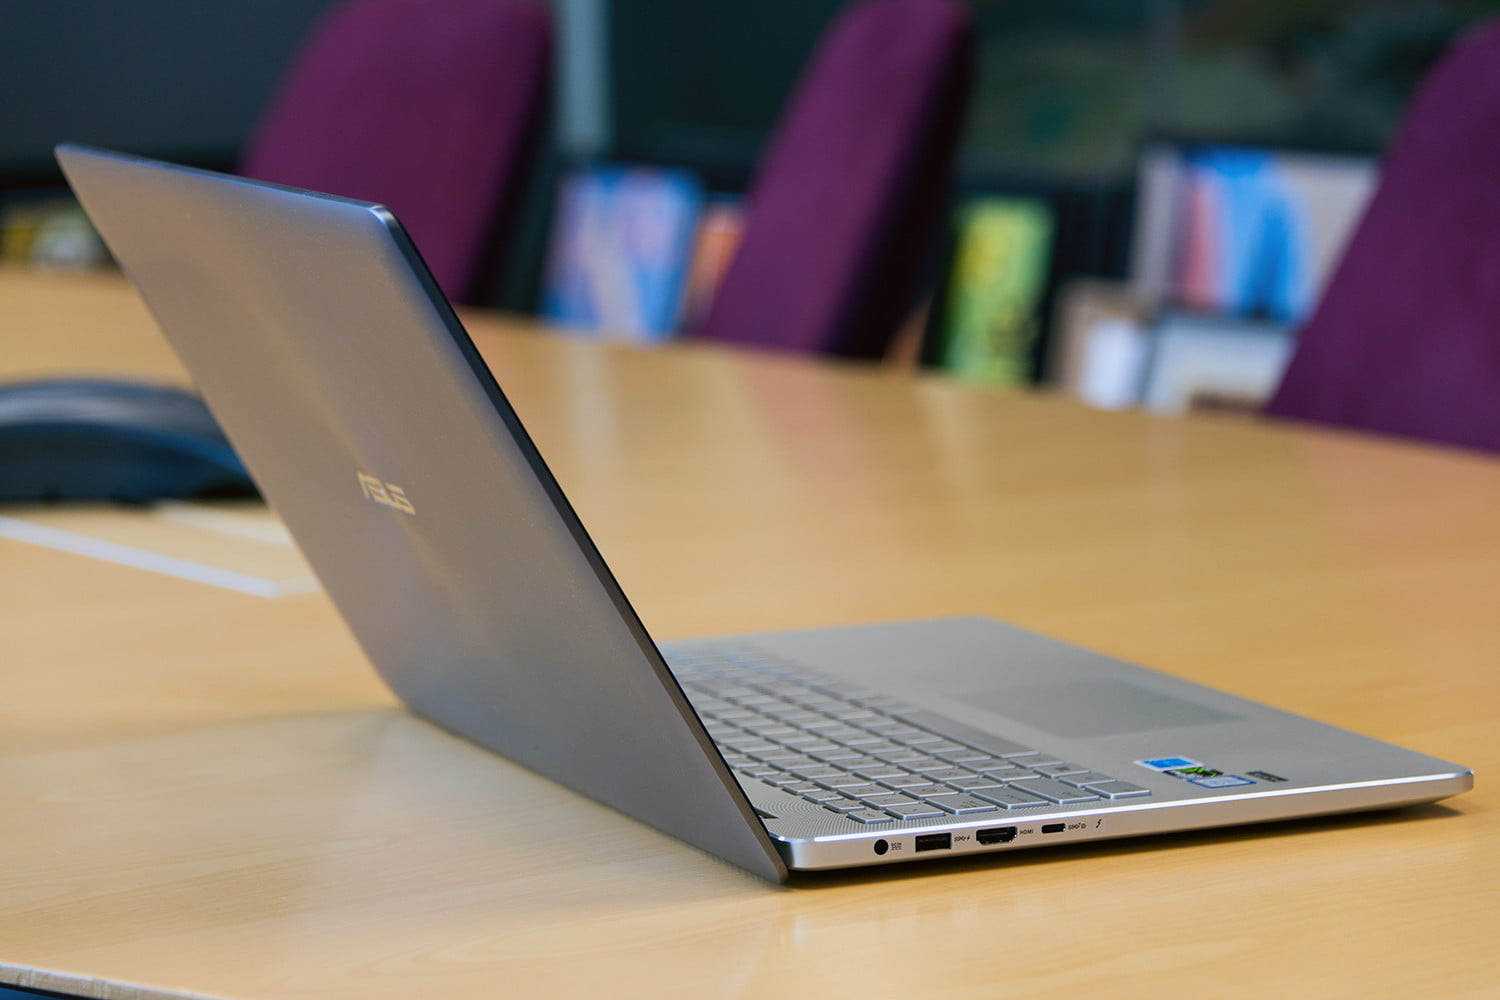 List hàng Laptop cao cấp Macbook-SONY-DELL-HP-ASUS-LENOVO-ACER-SAMSUNG ship từ USA - 29